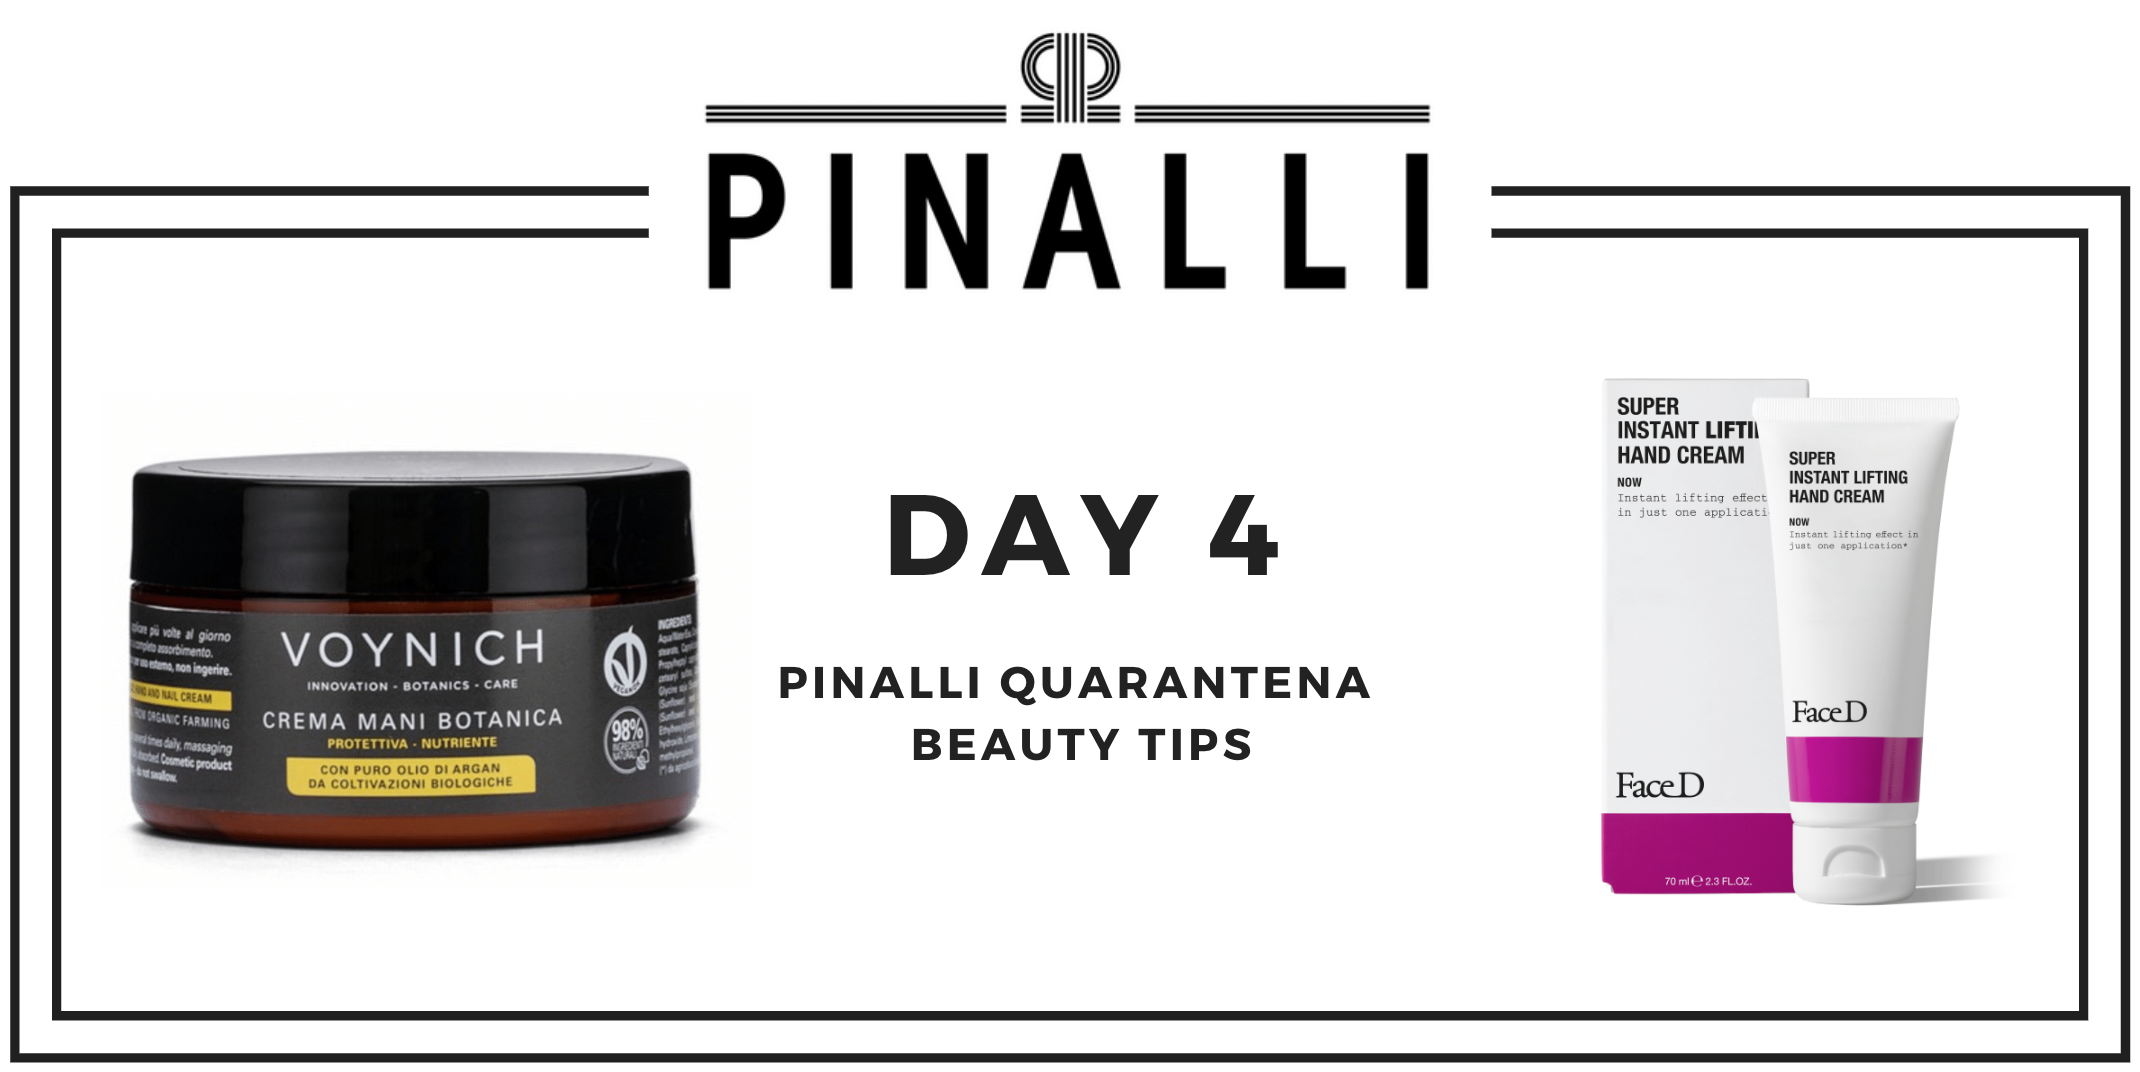 Pinalli Quarantena Beauty Tips_Day4